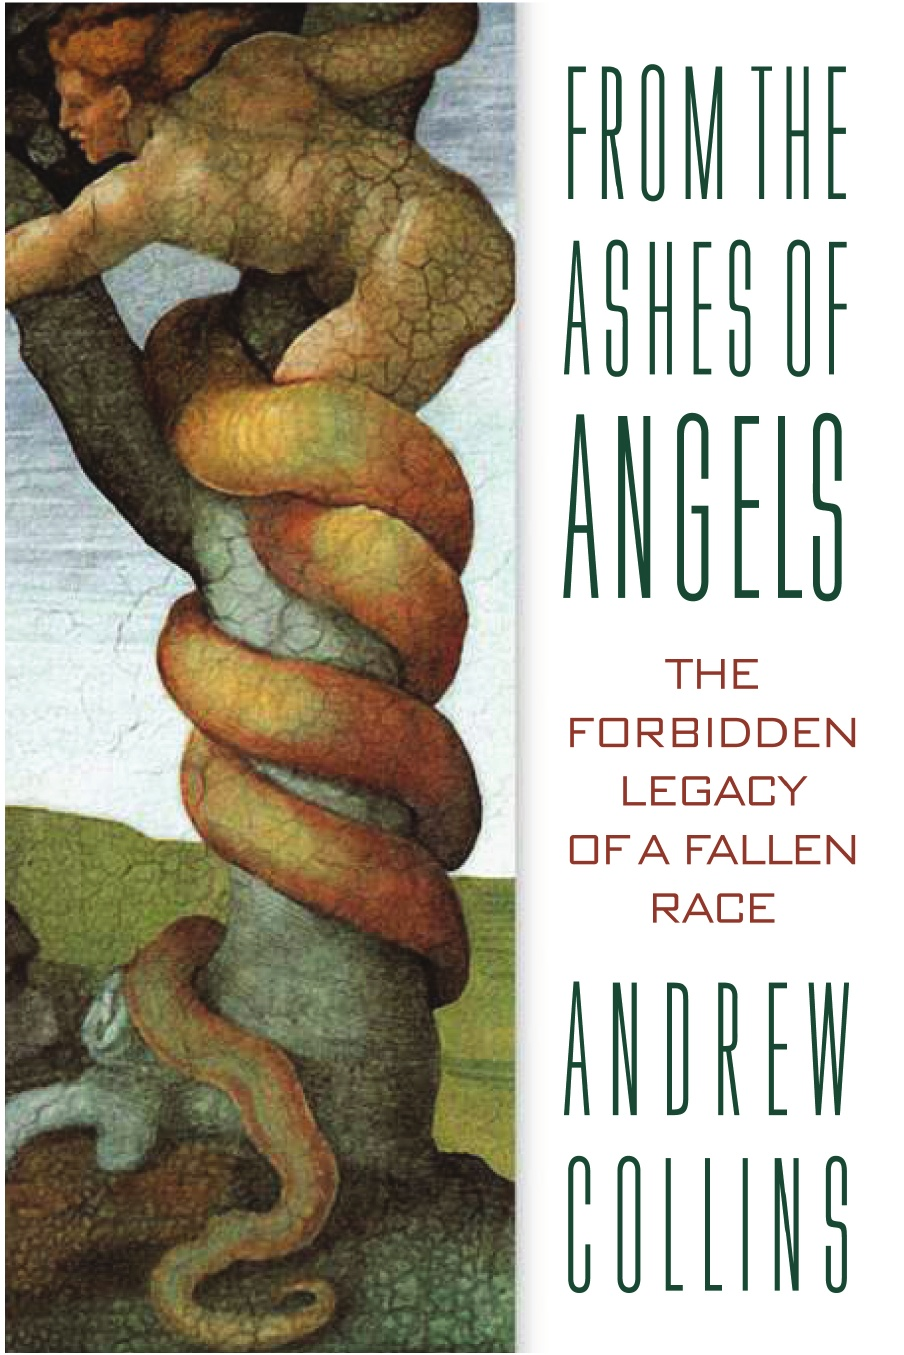 From The Ashes Of Angels - The Forbidden Legacy of a Fallen Race